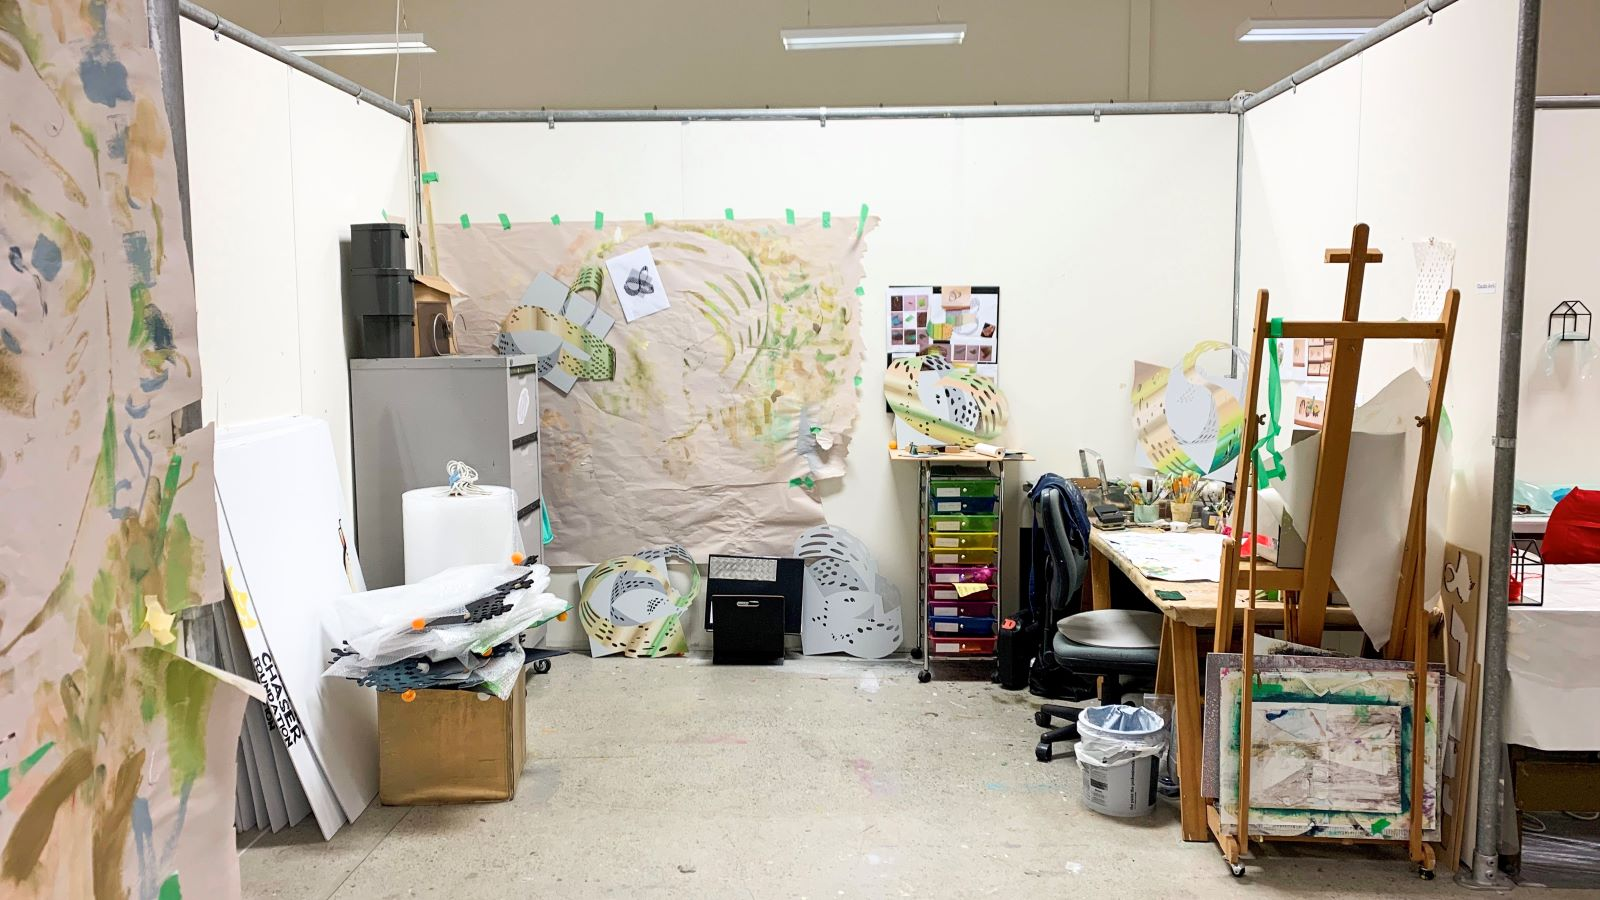 Claudia Avril has her own studio space at Wintec School of Media Arts